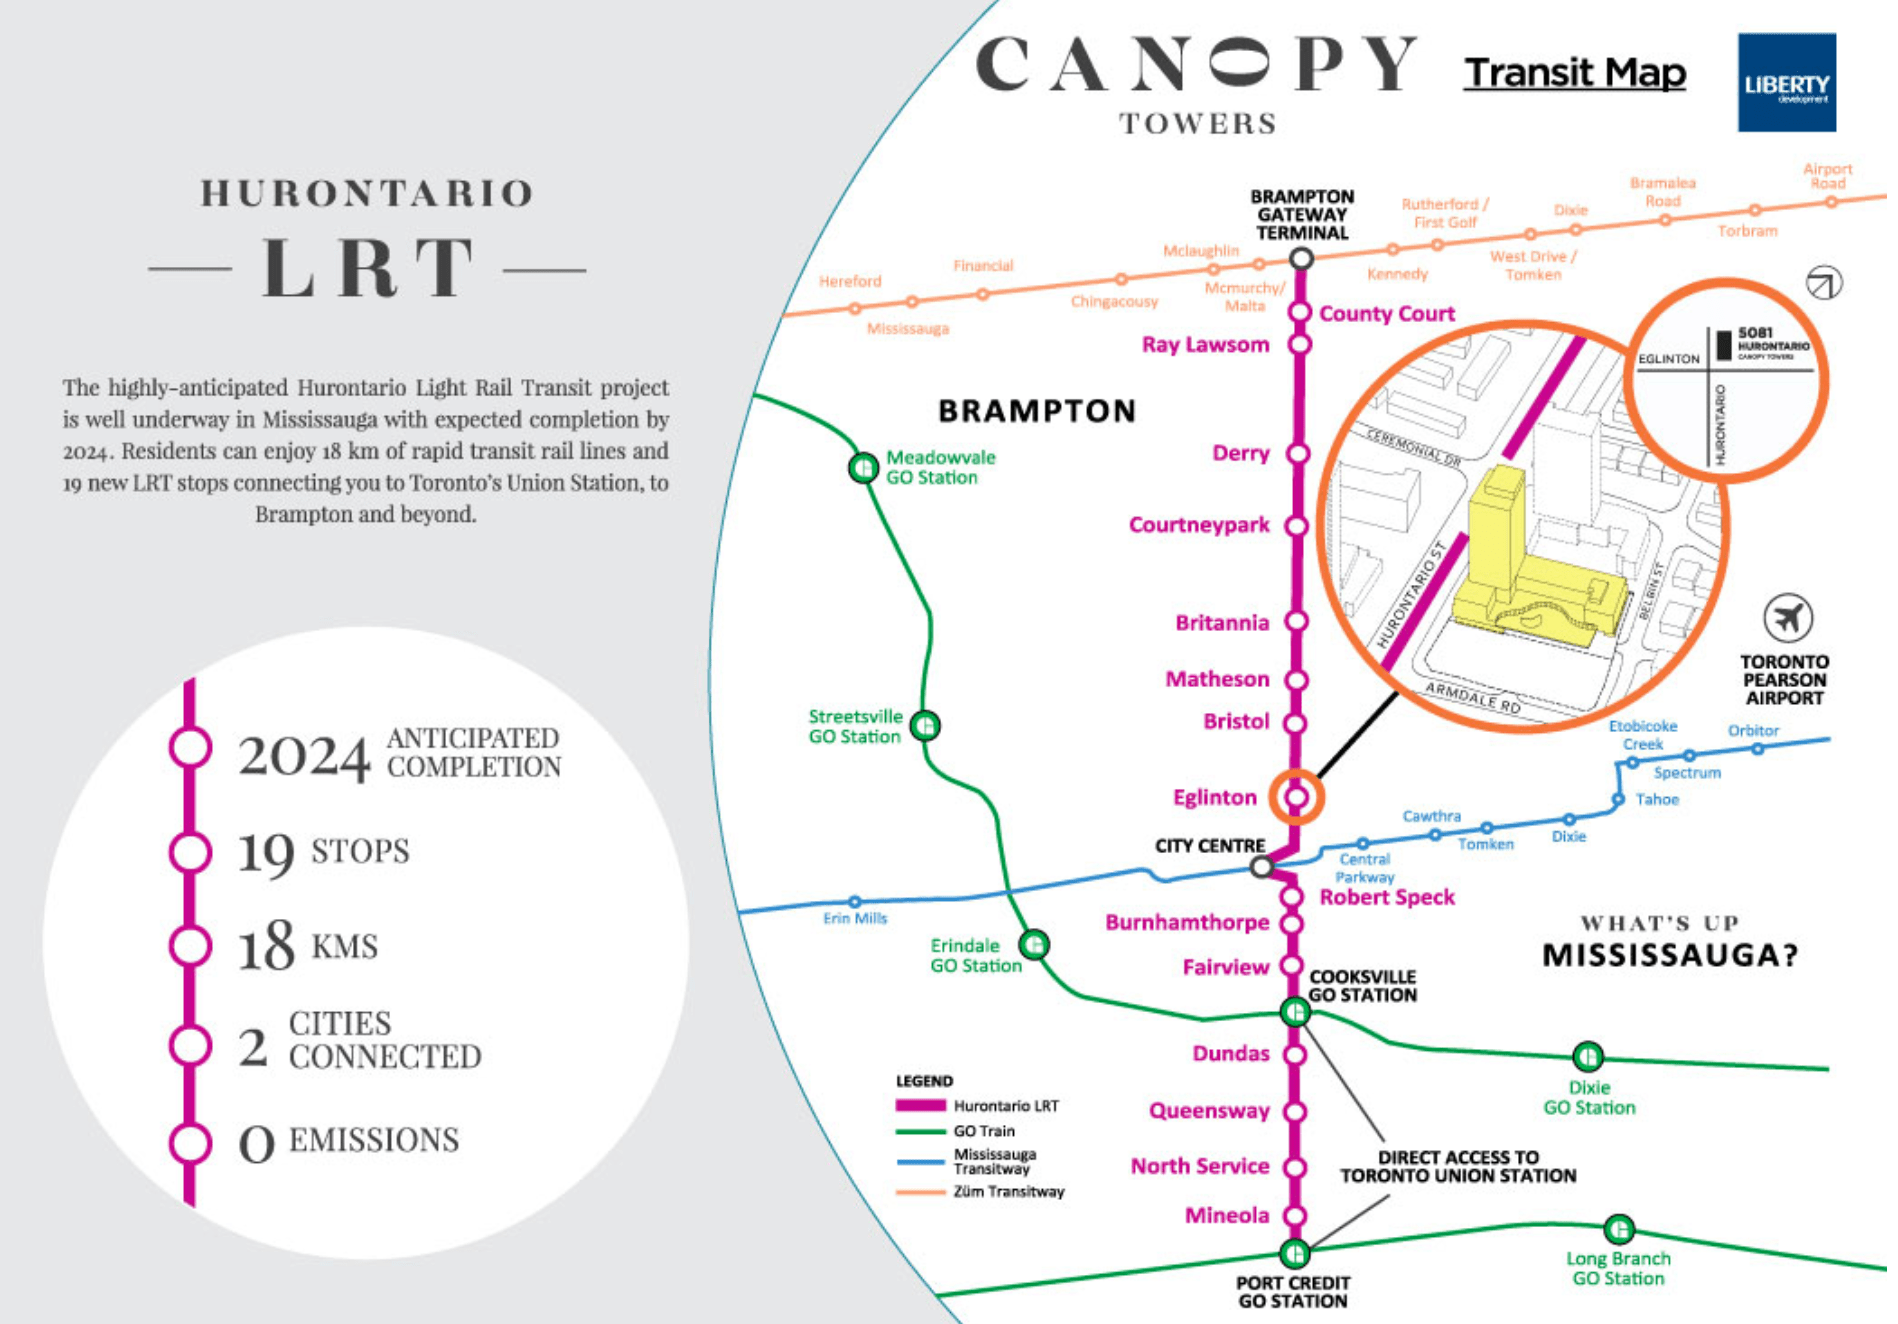 Canopy Towers Transit Map